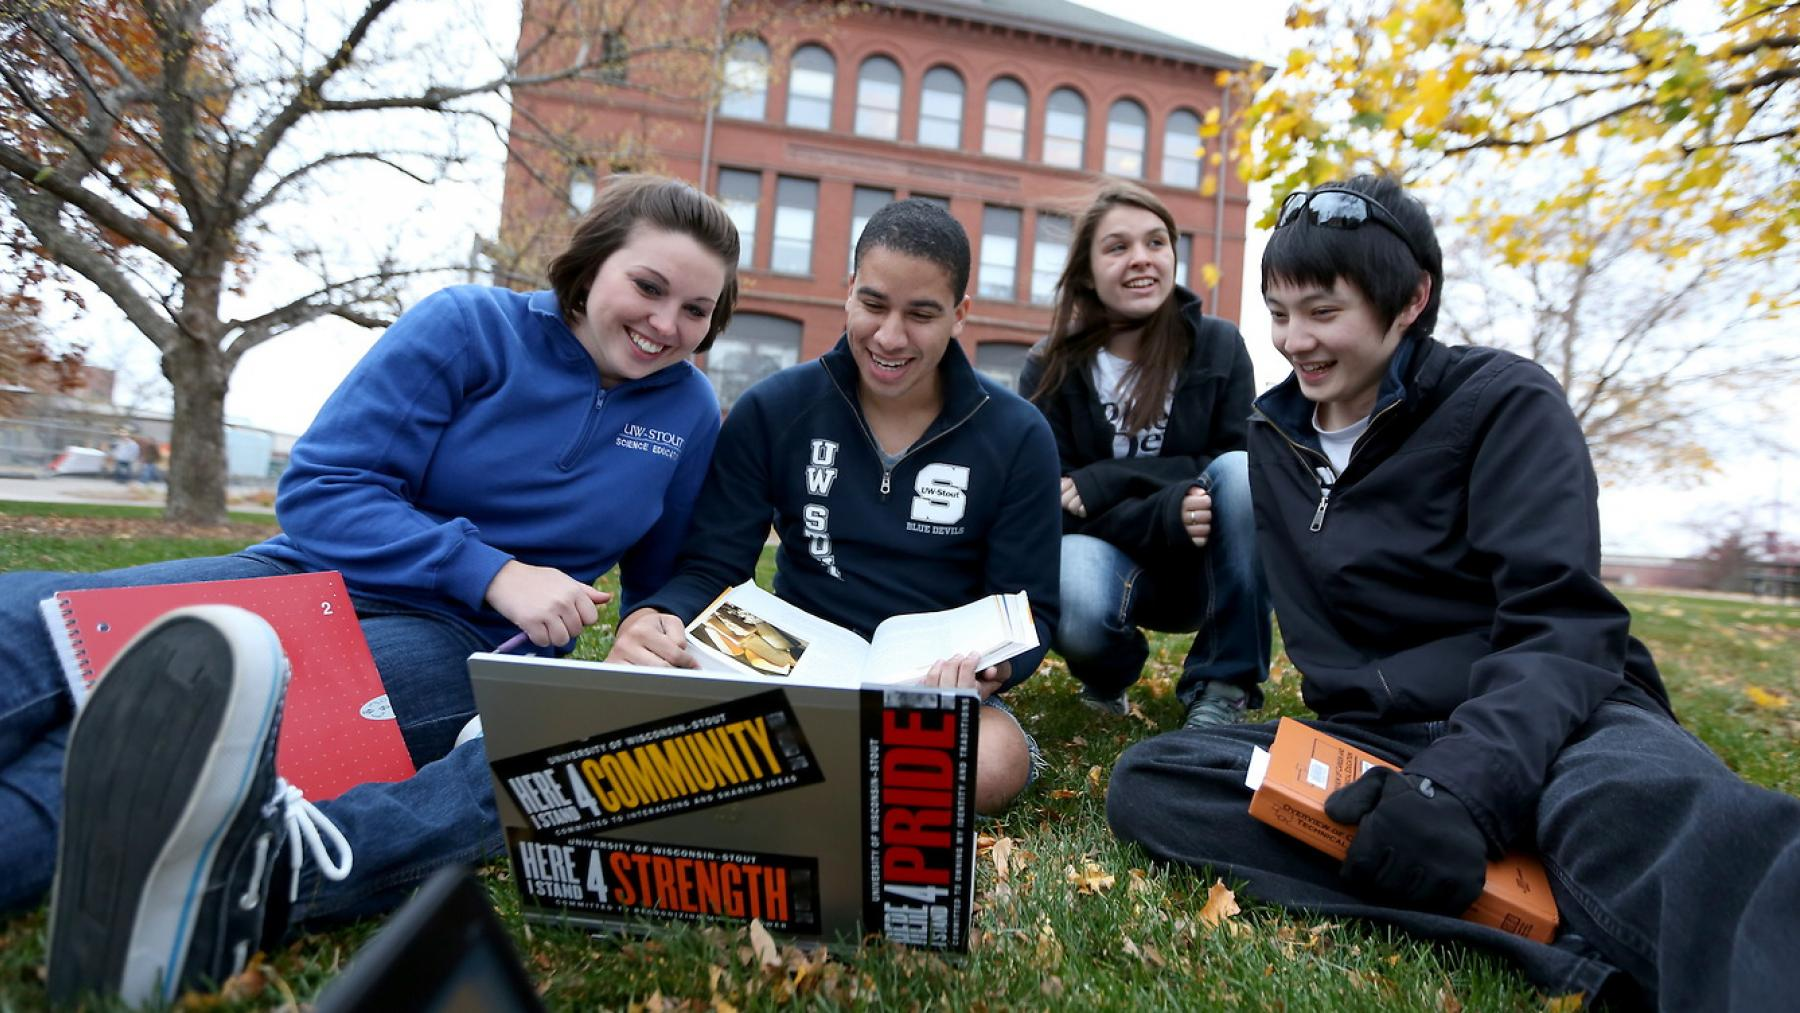 UW-Stout students lounge and study on the campus lawn.